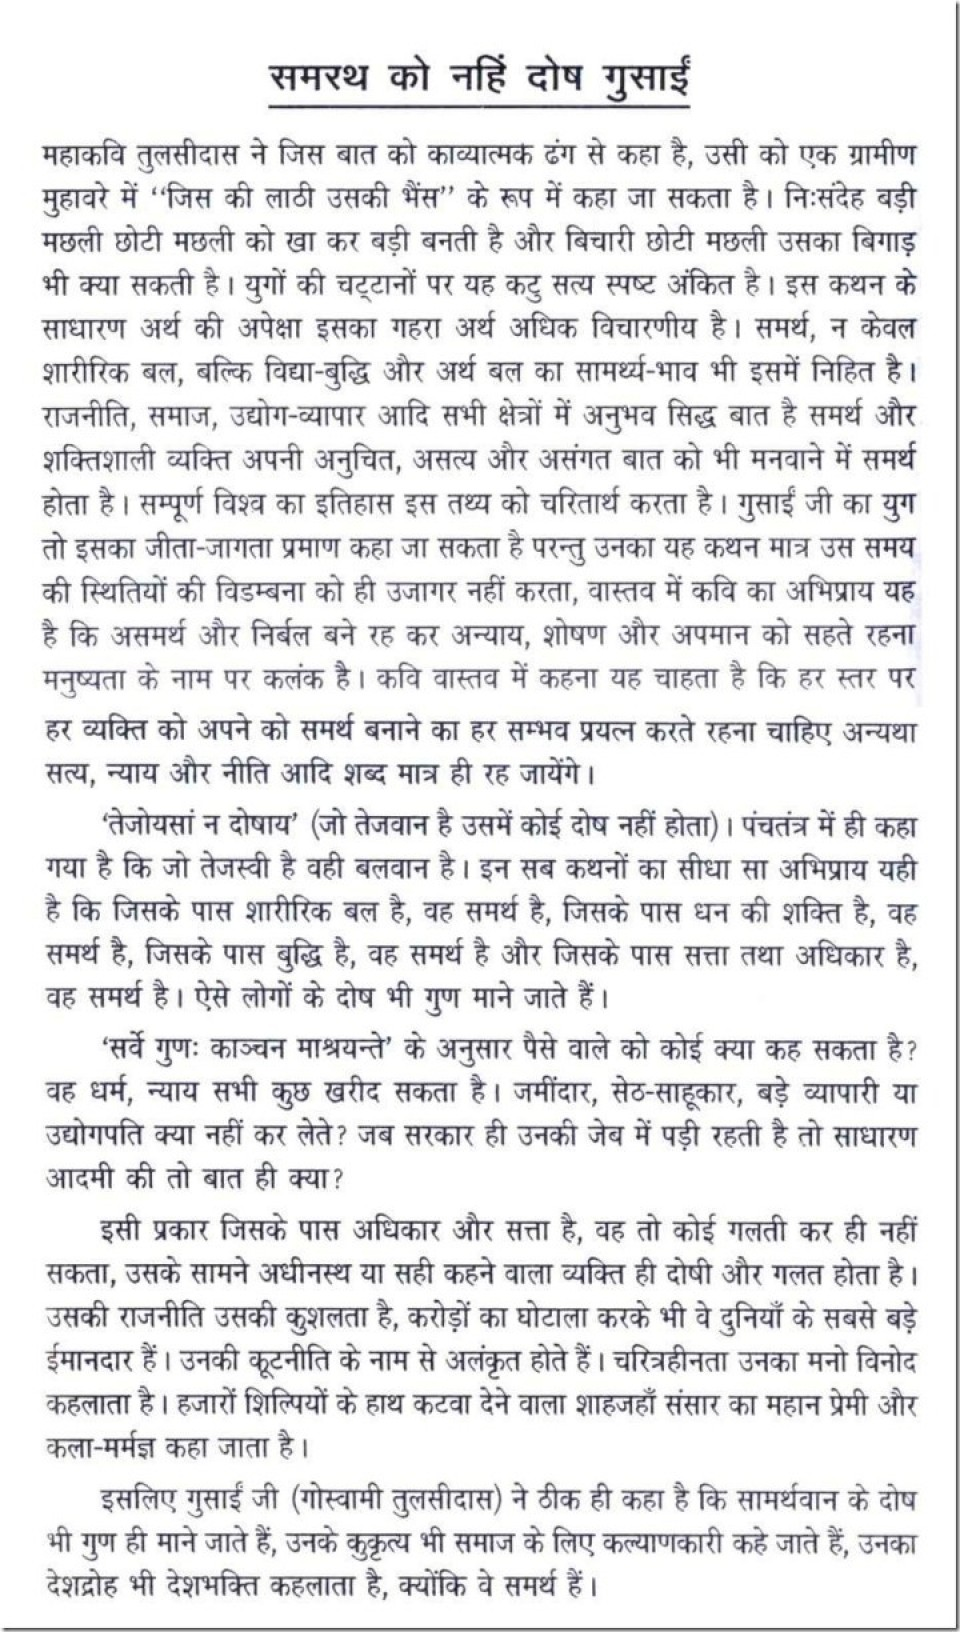 007 Good Habits Essay In Hindi Example Hh0055 Thumbresize7202c1224 Exceptional Healthy Eating Reading Is A Habit 960